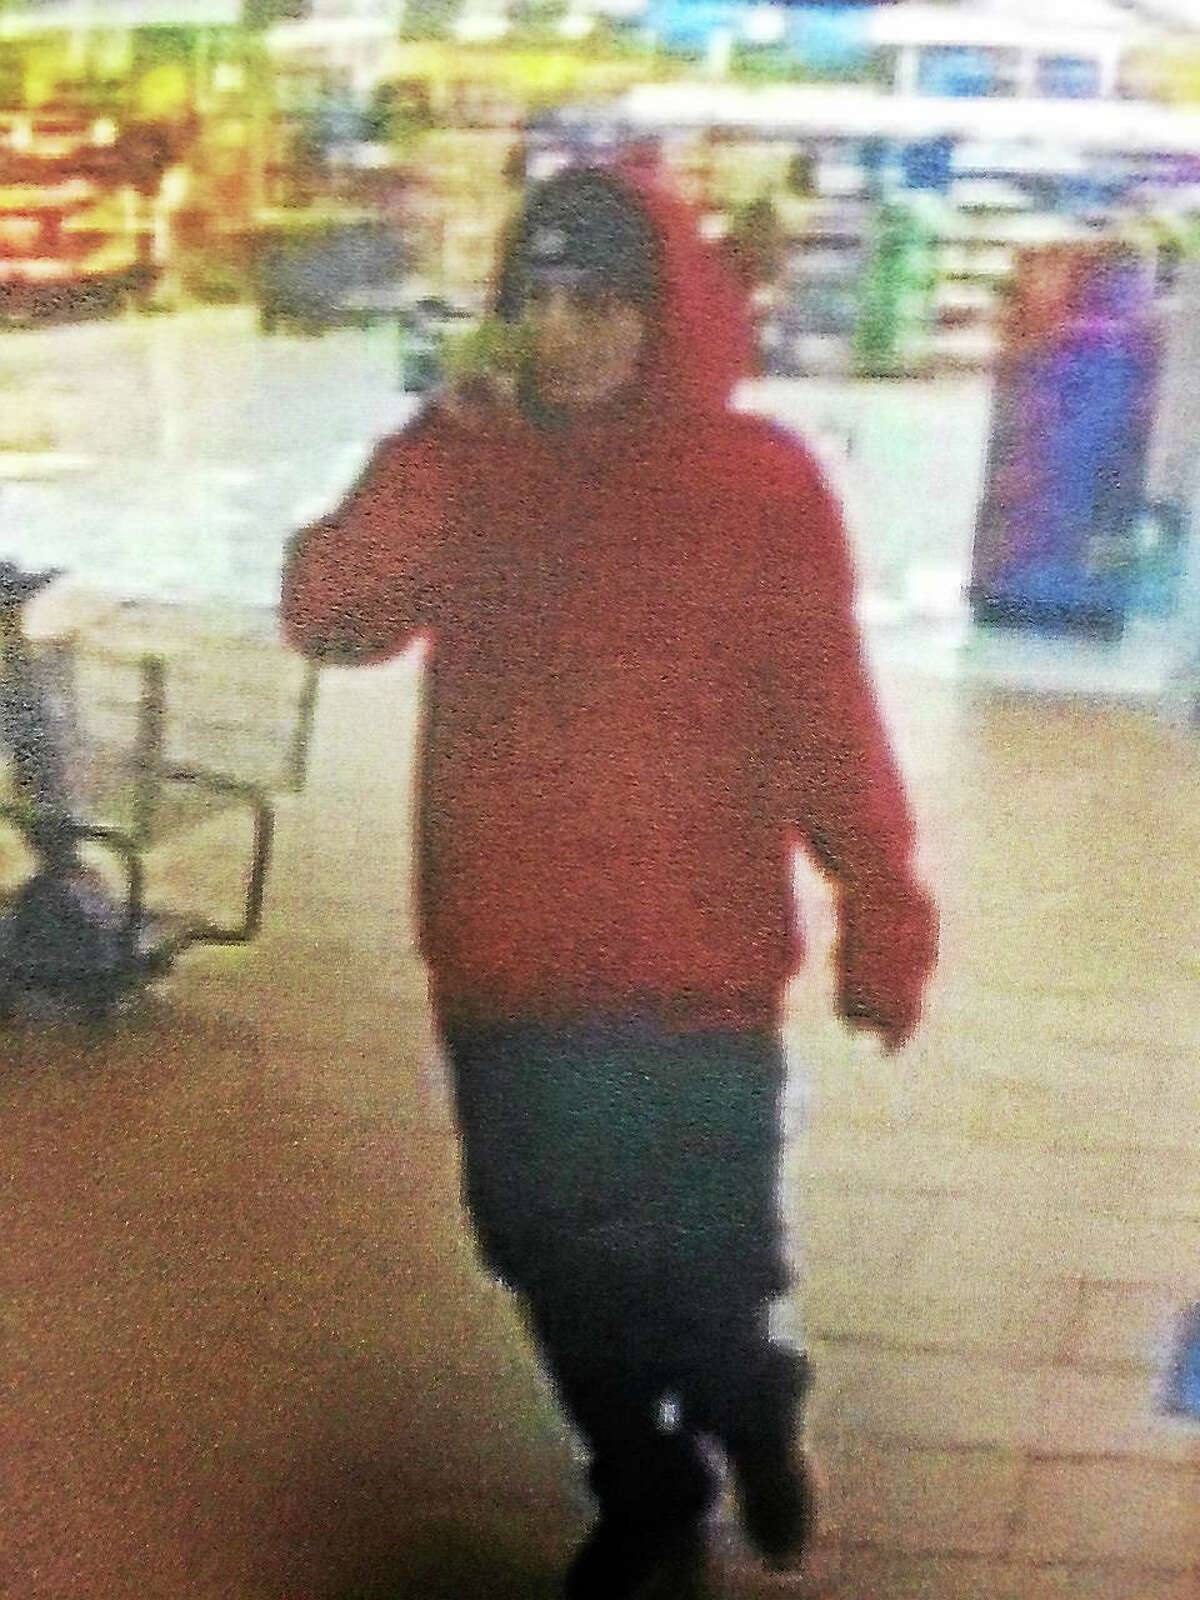 Courtesy state police Authorities are searching for two men they say broke into a number of cars last week and stole items.